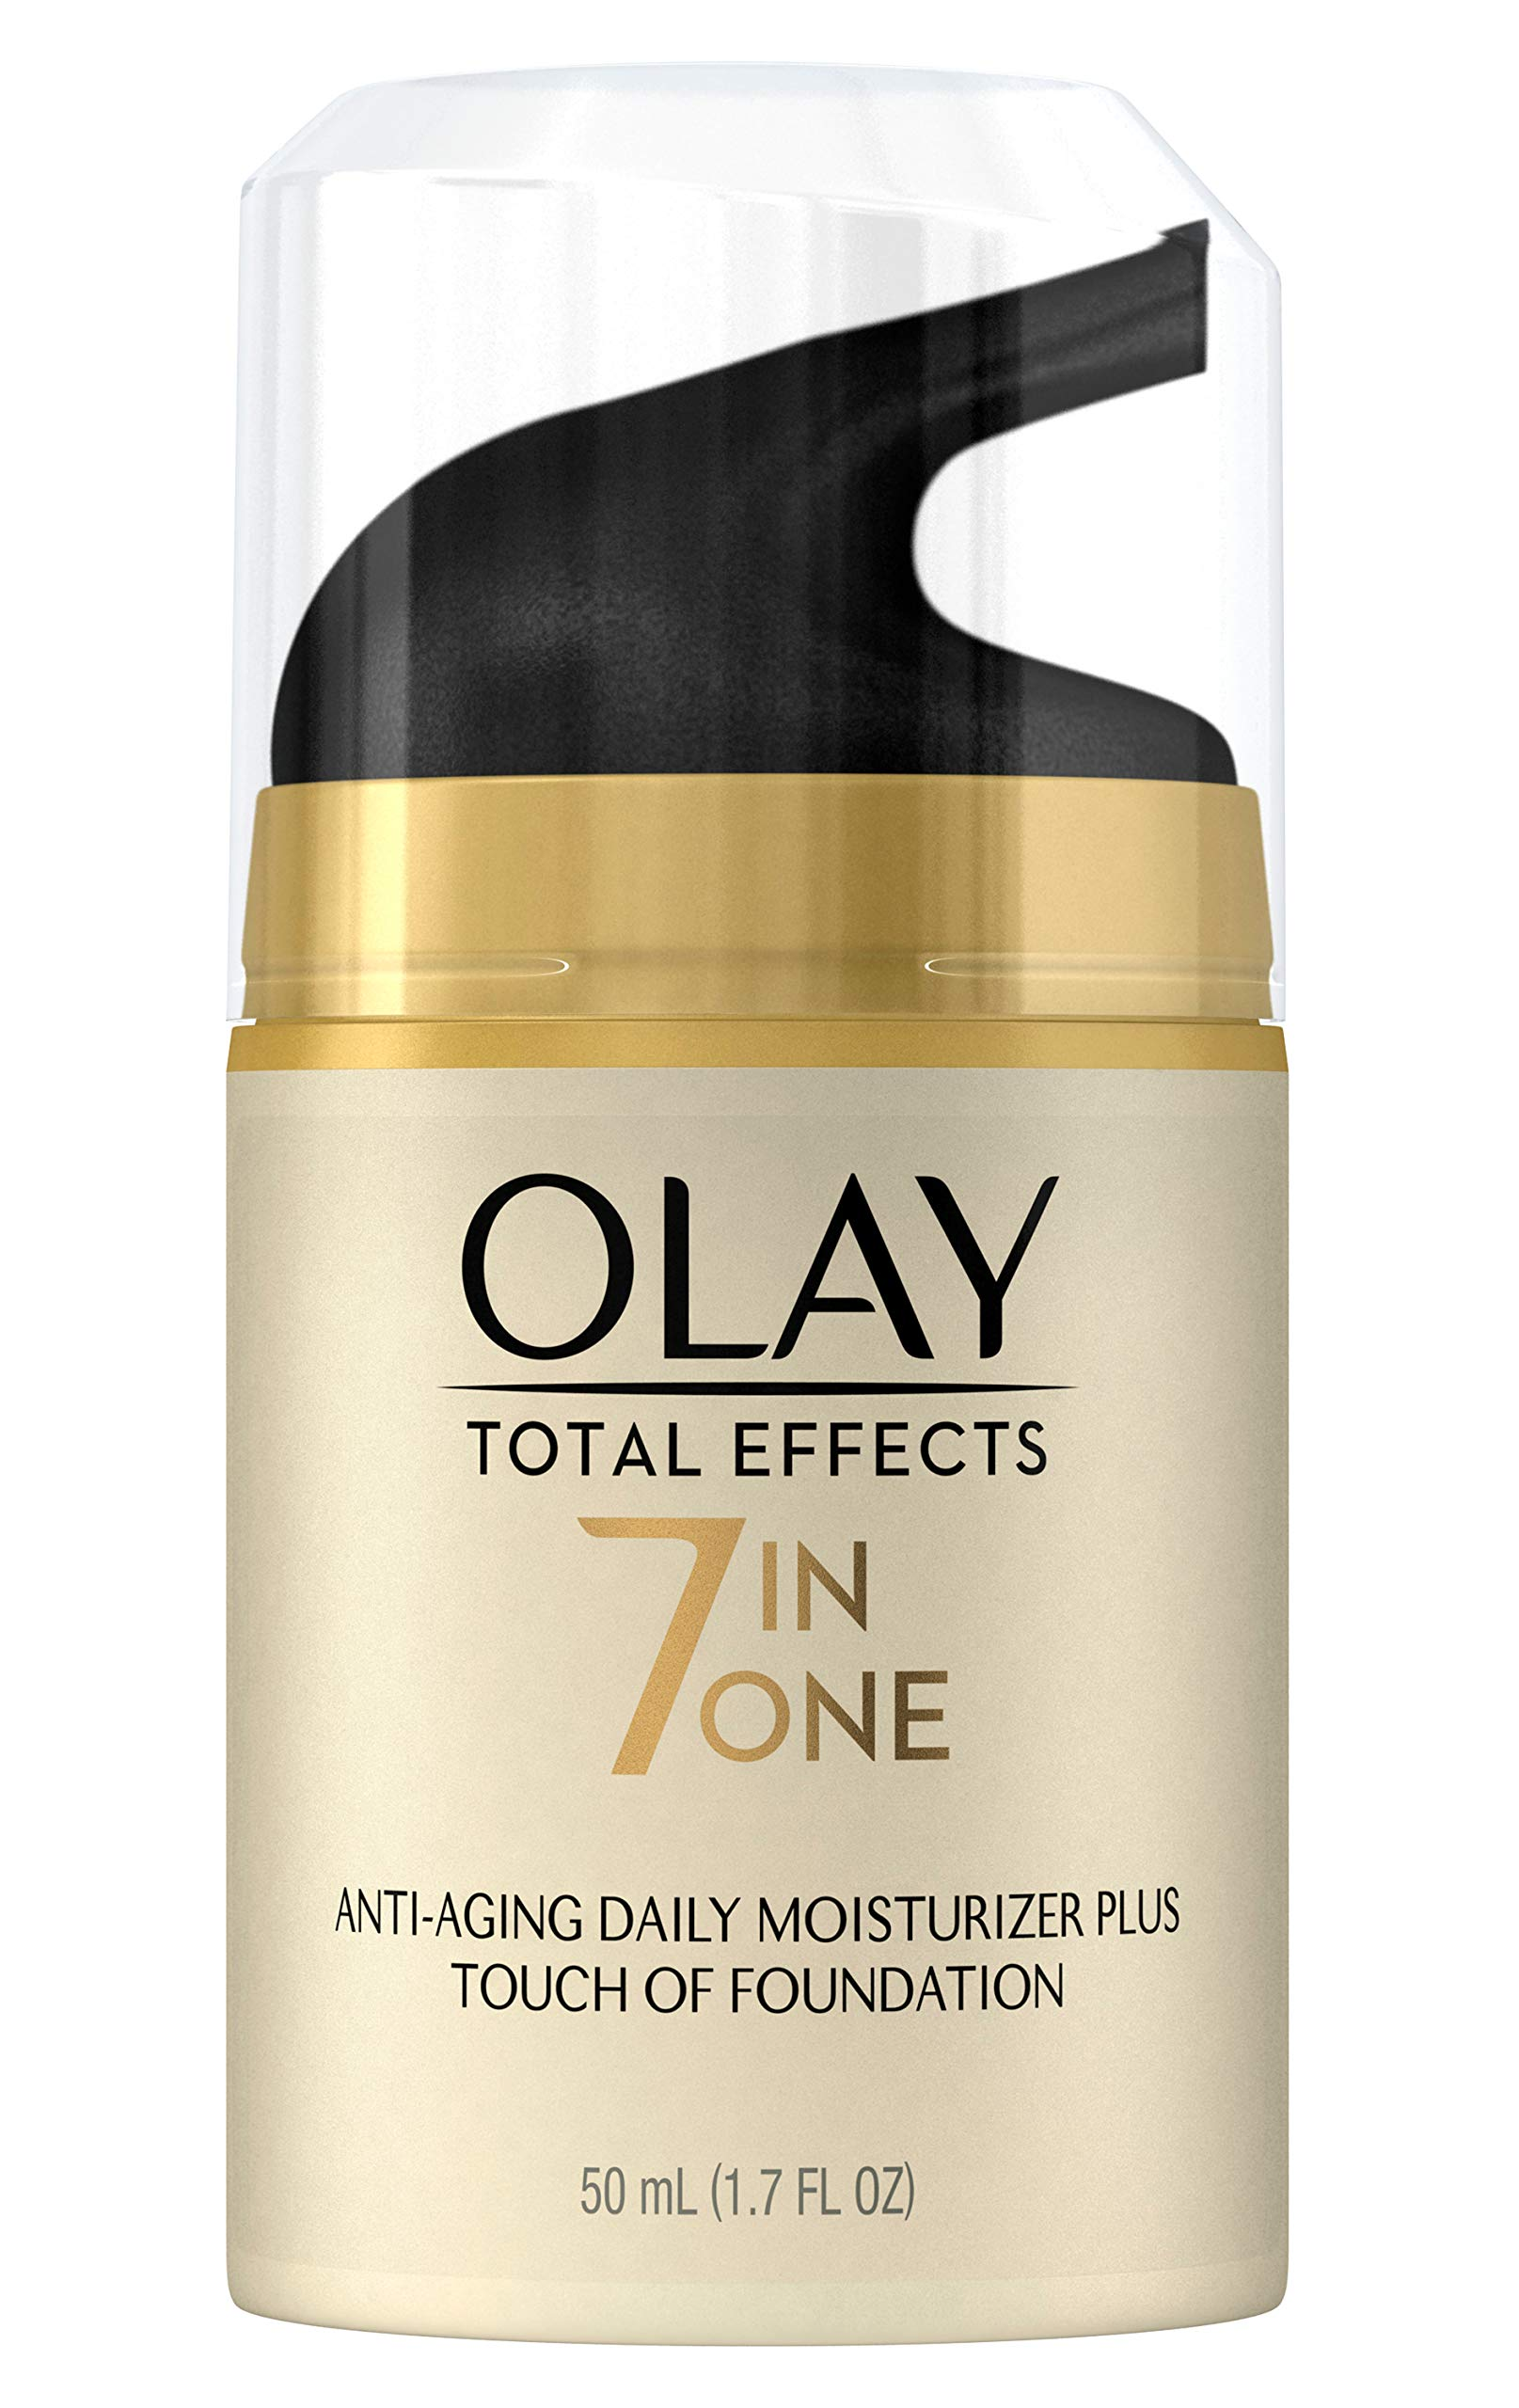 CC Cream by Olay, Total Effects Daily Moisturizer + Touch of Foundation, 50 mL by Olay